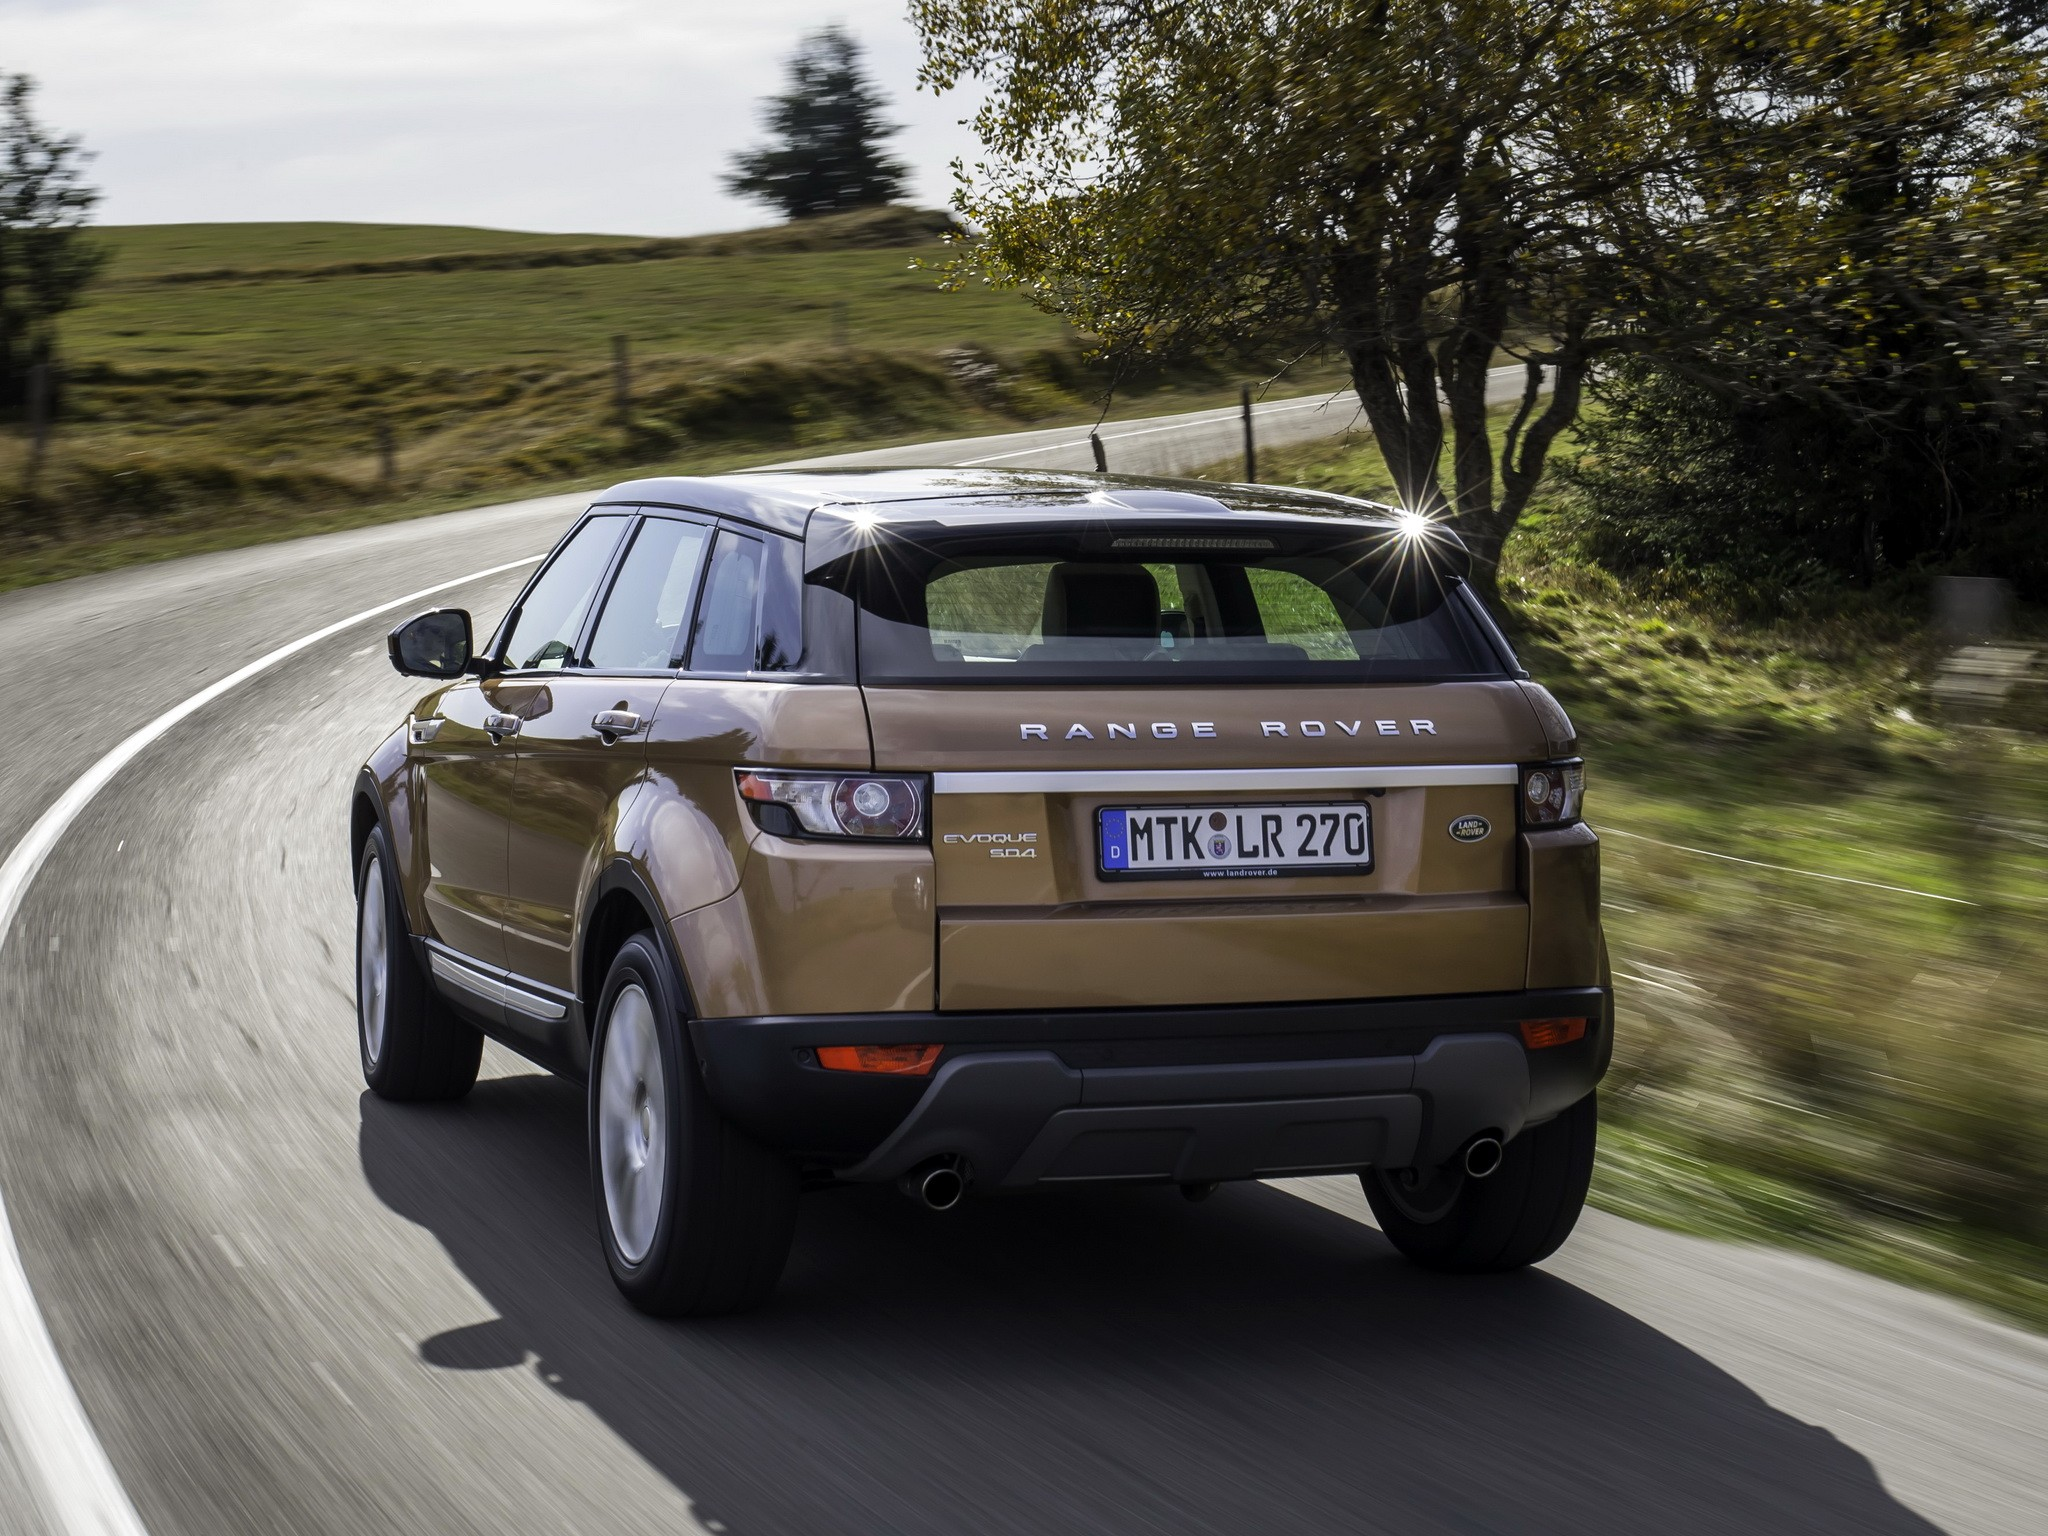 2019 Land Rover Range Rover Evoque 5 door photo - 6